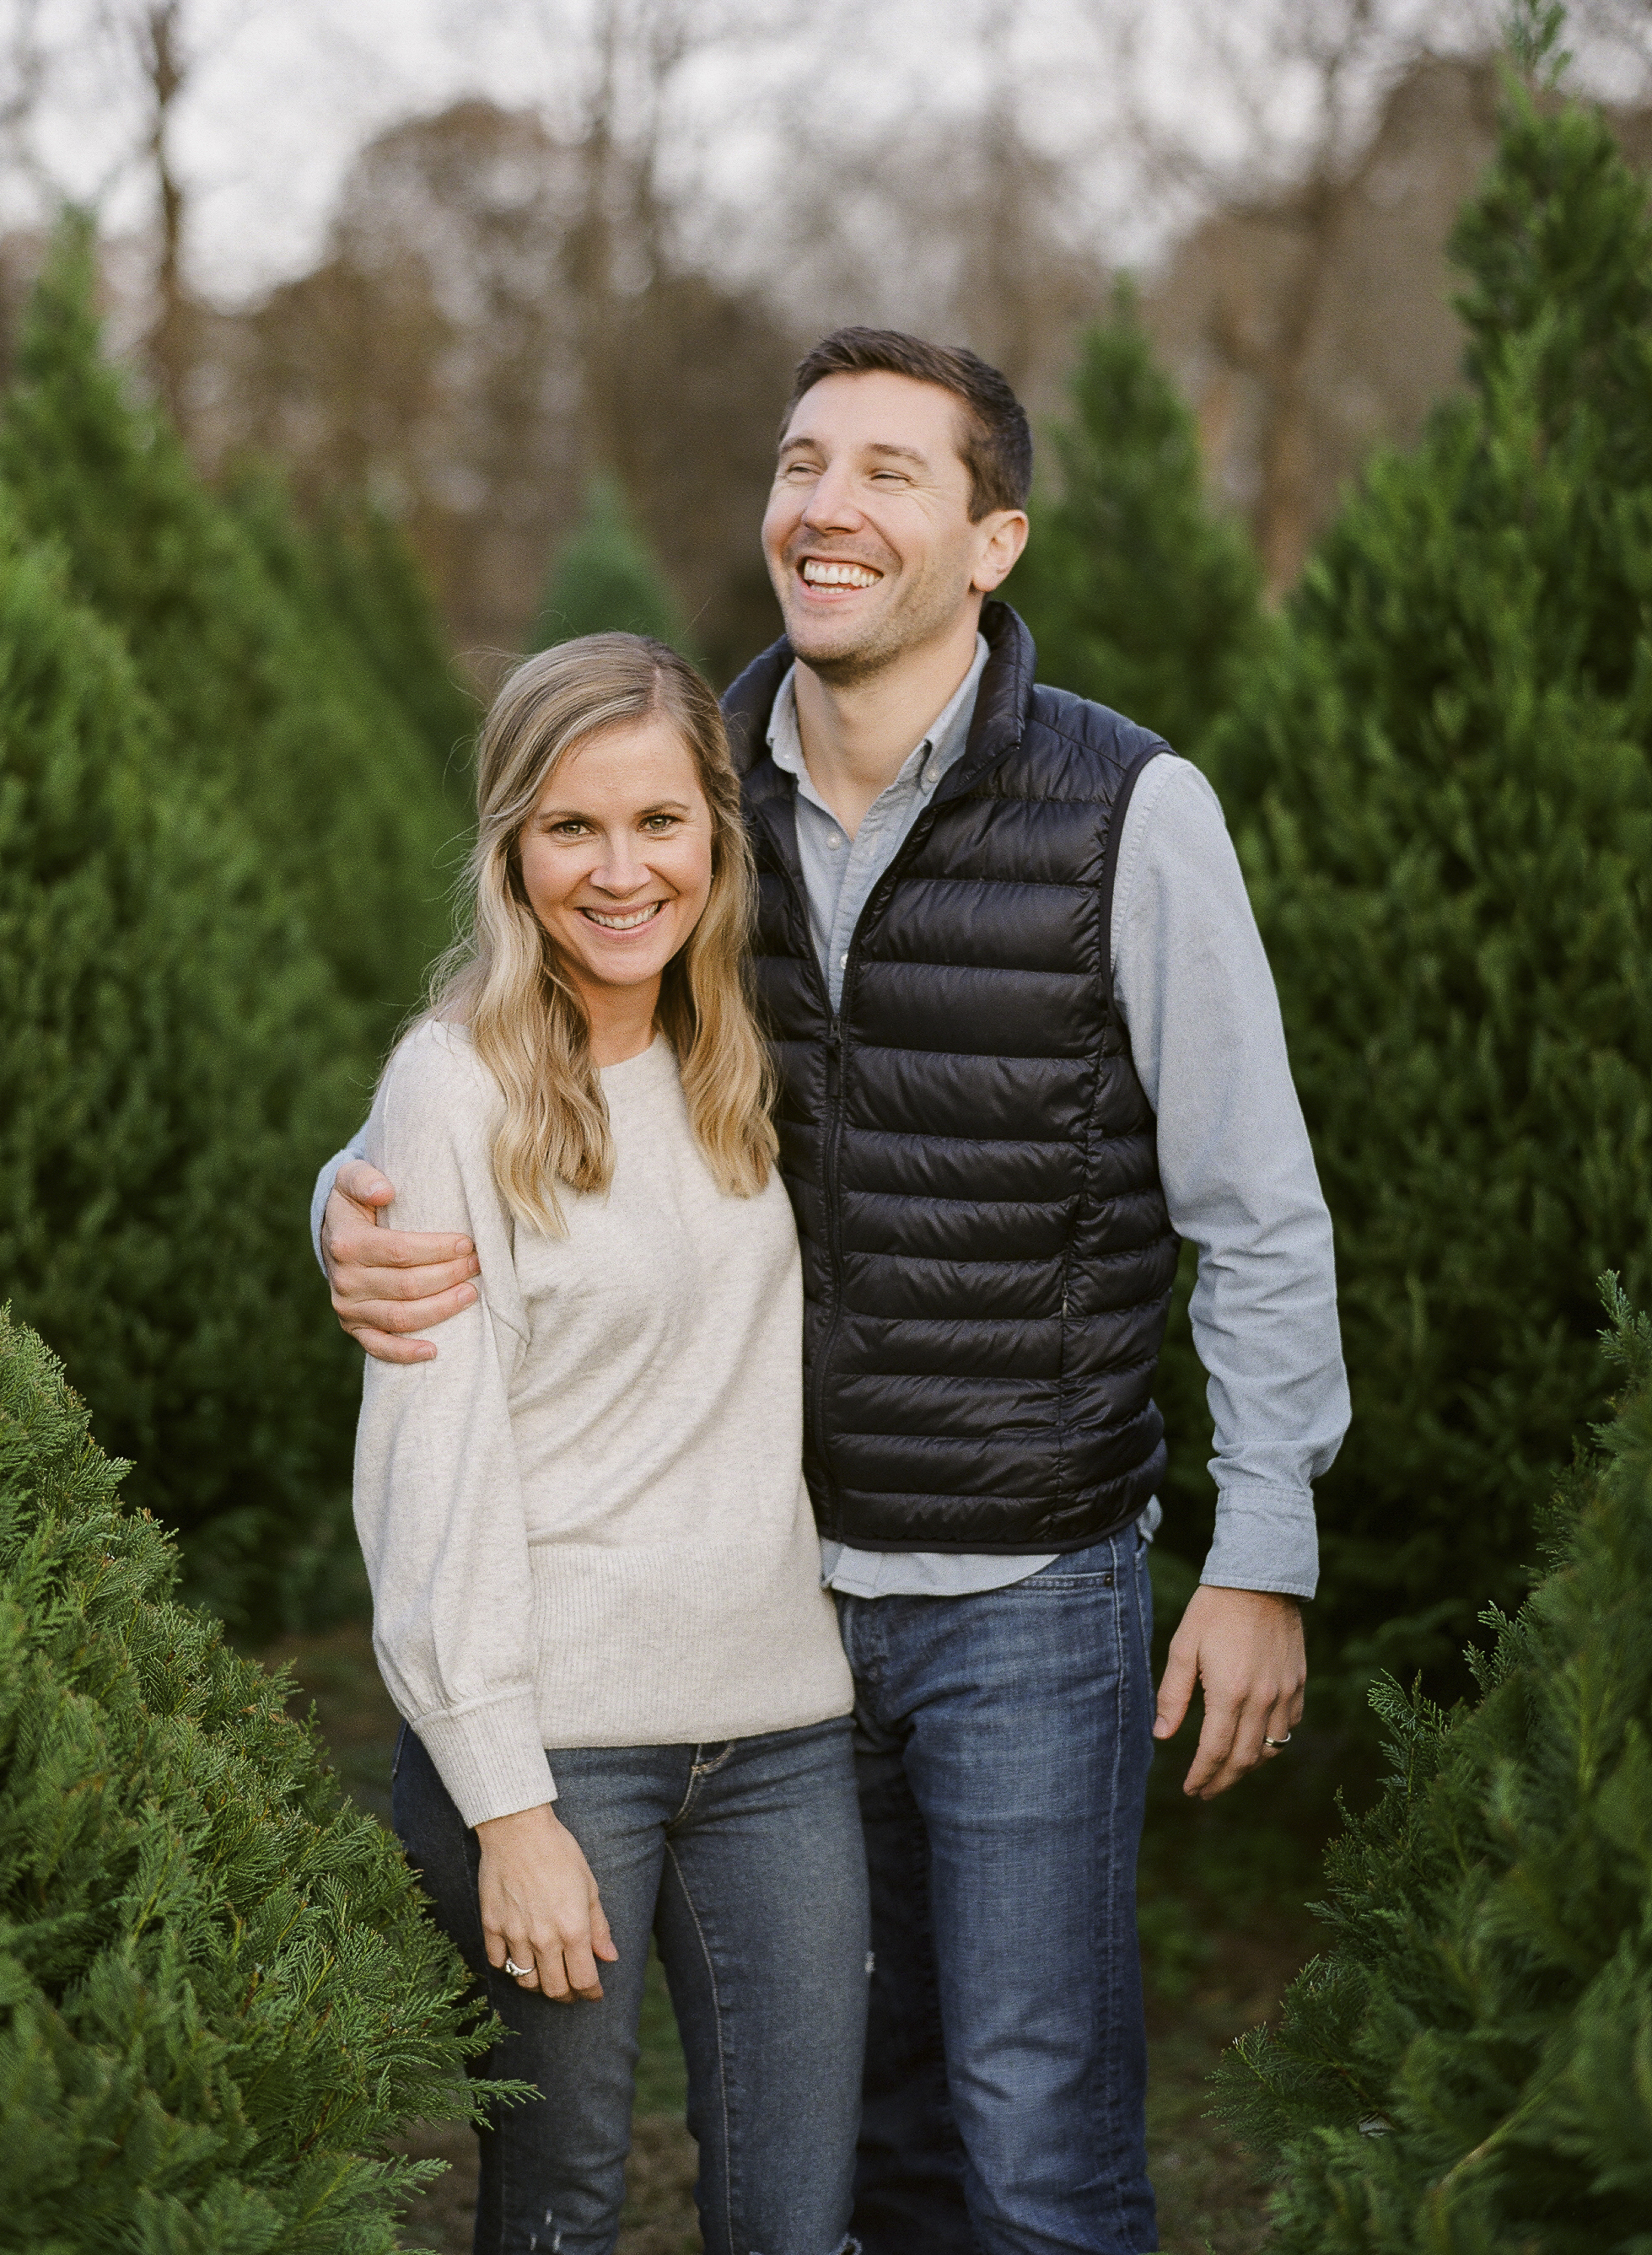 Brandon Chesbro Family Photographer Photo-40.jpg